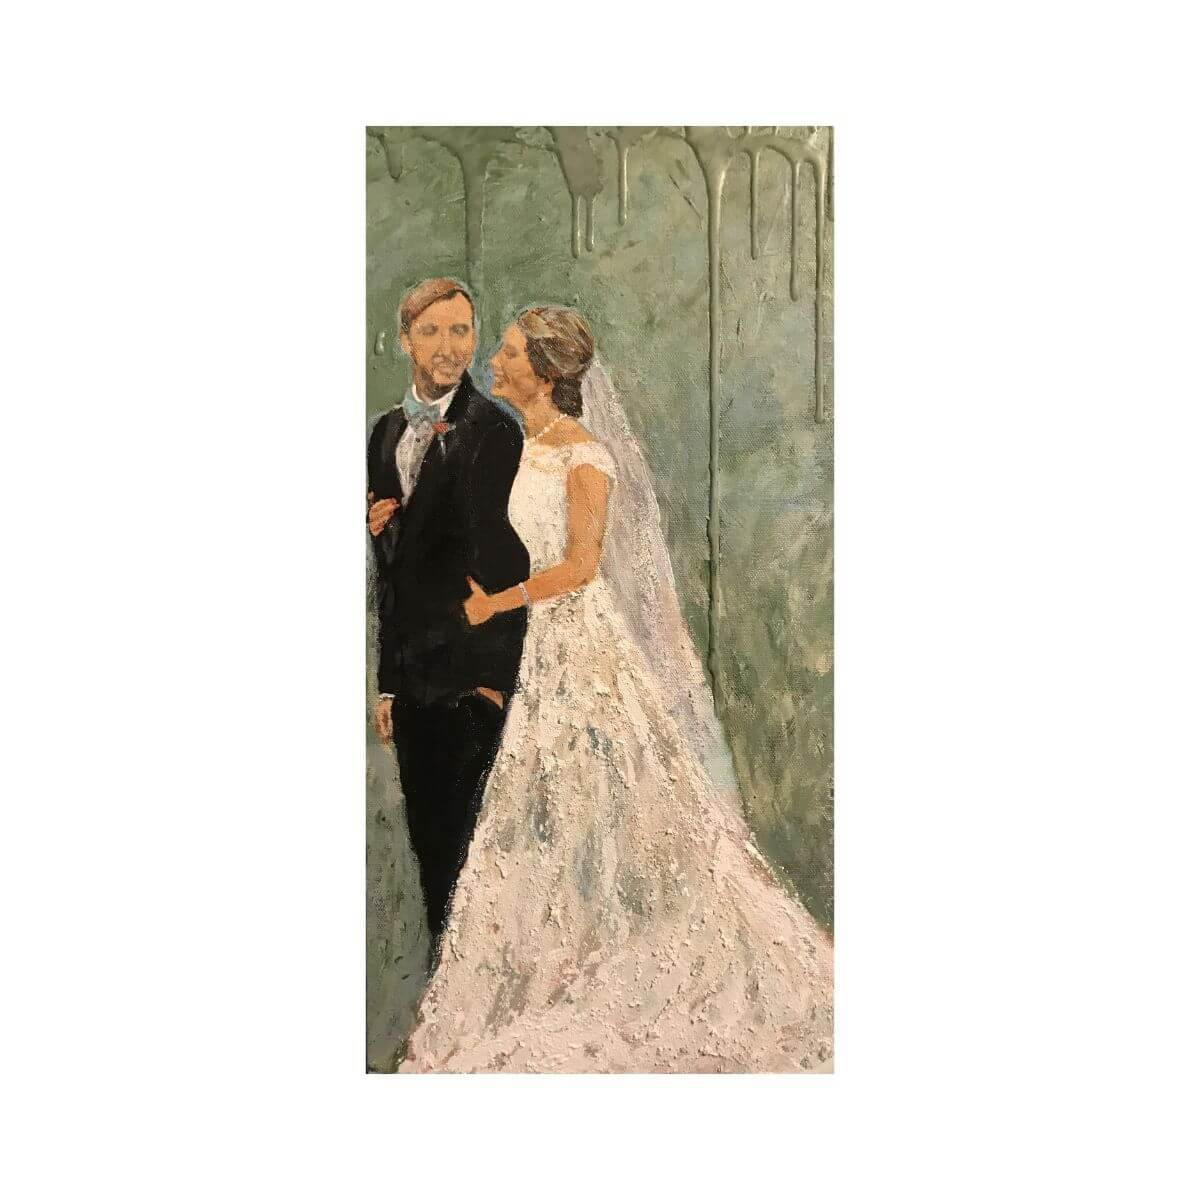 Abstract Bridal Portraits-10X20-1 | Wedding Anniversary Portrait | Mishkalo Bridal Registry